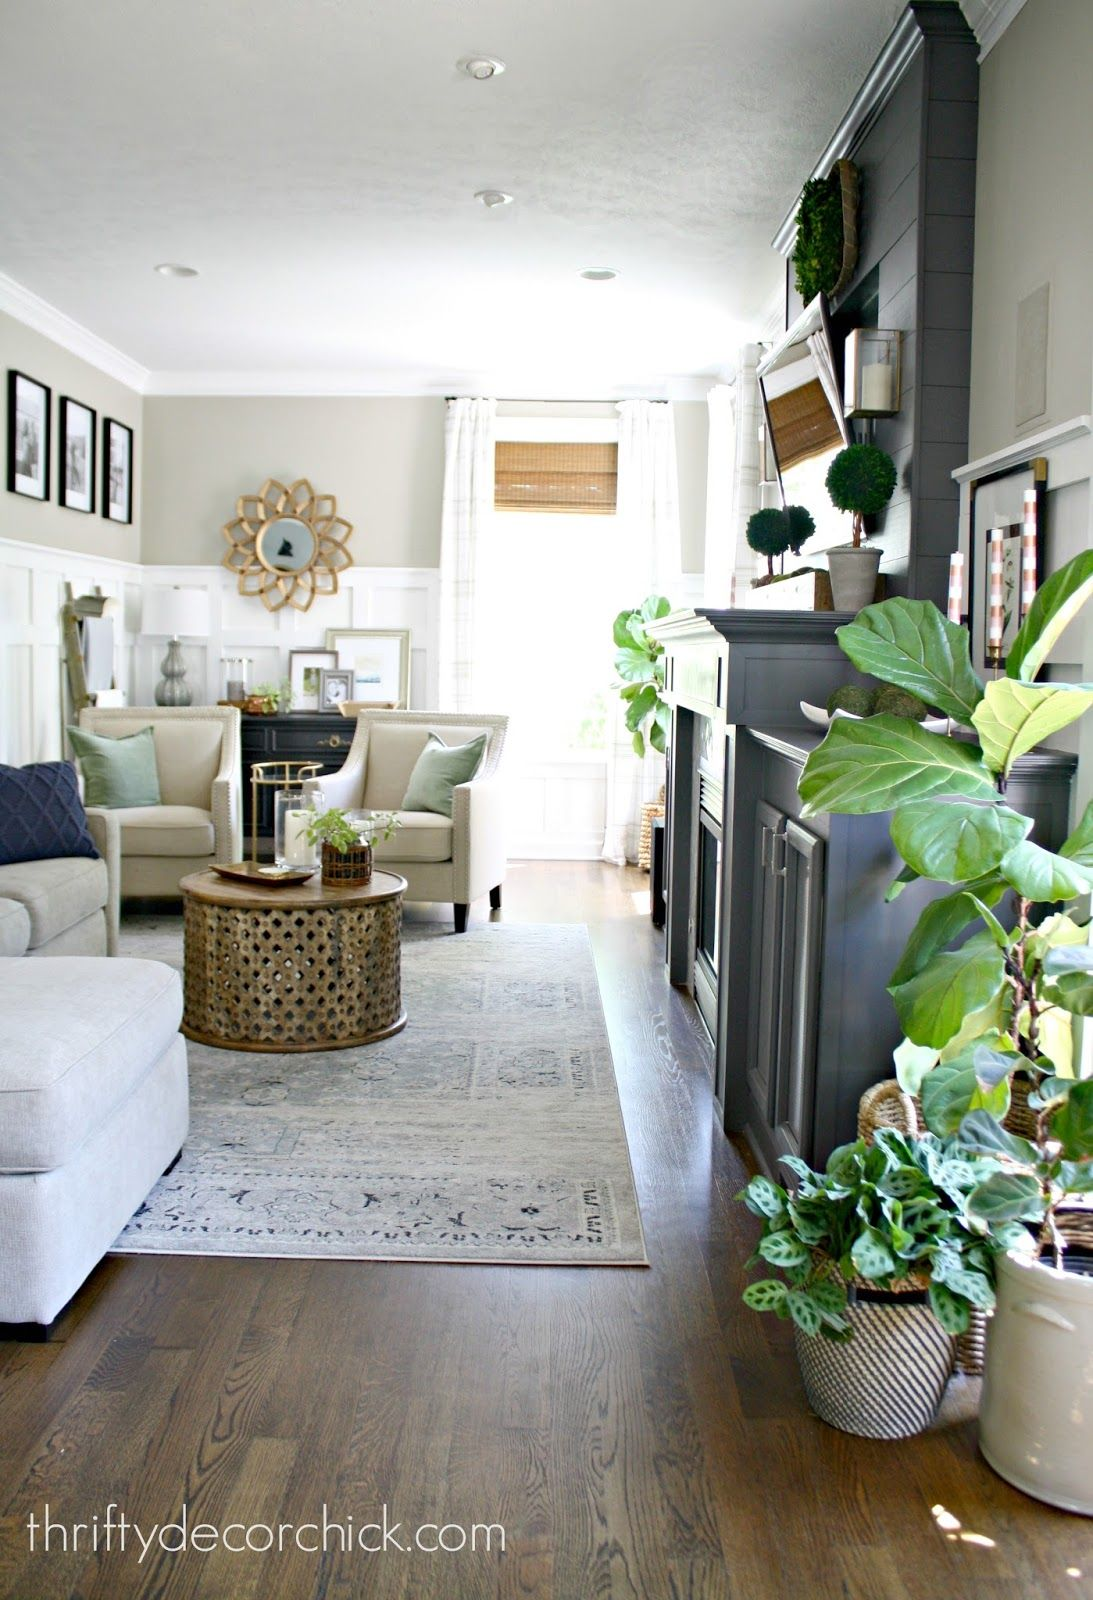 Our Home | decorating likes | Bedroom decor, Narrow living ...